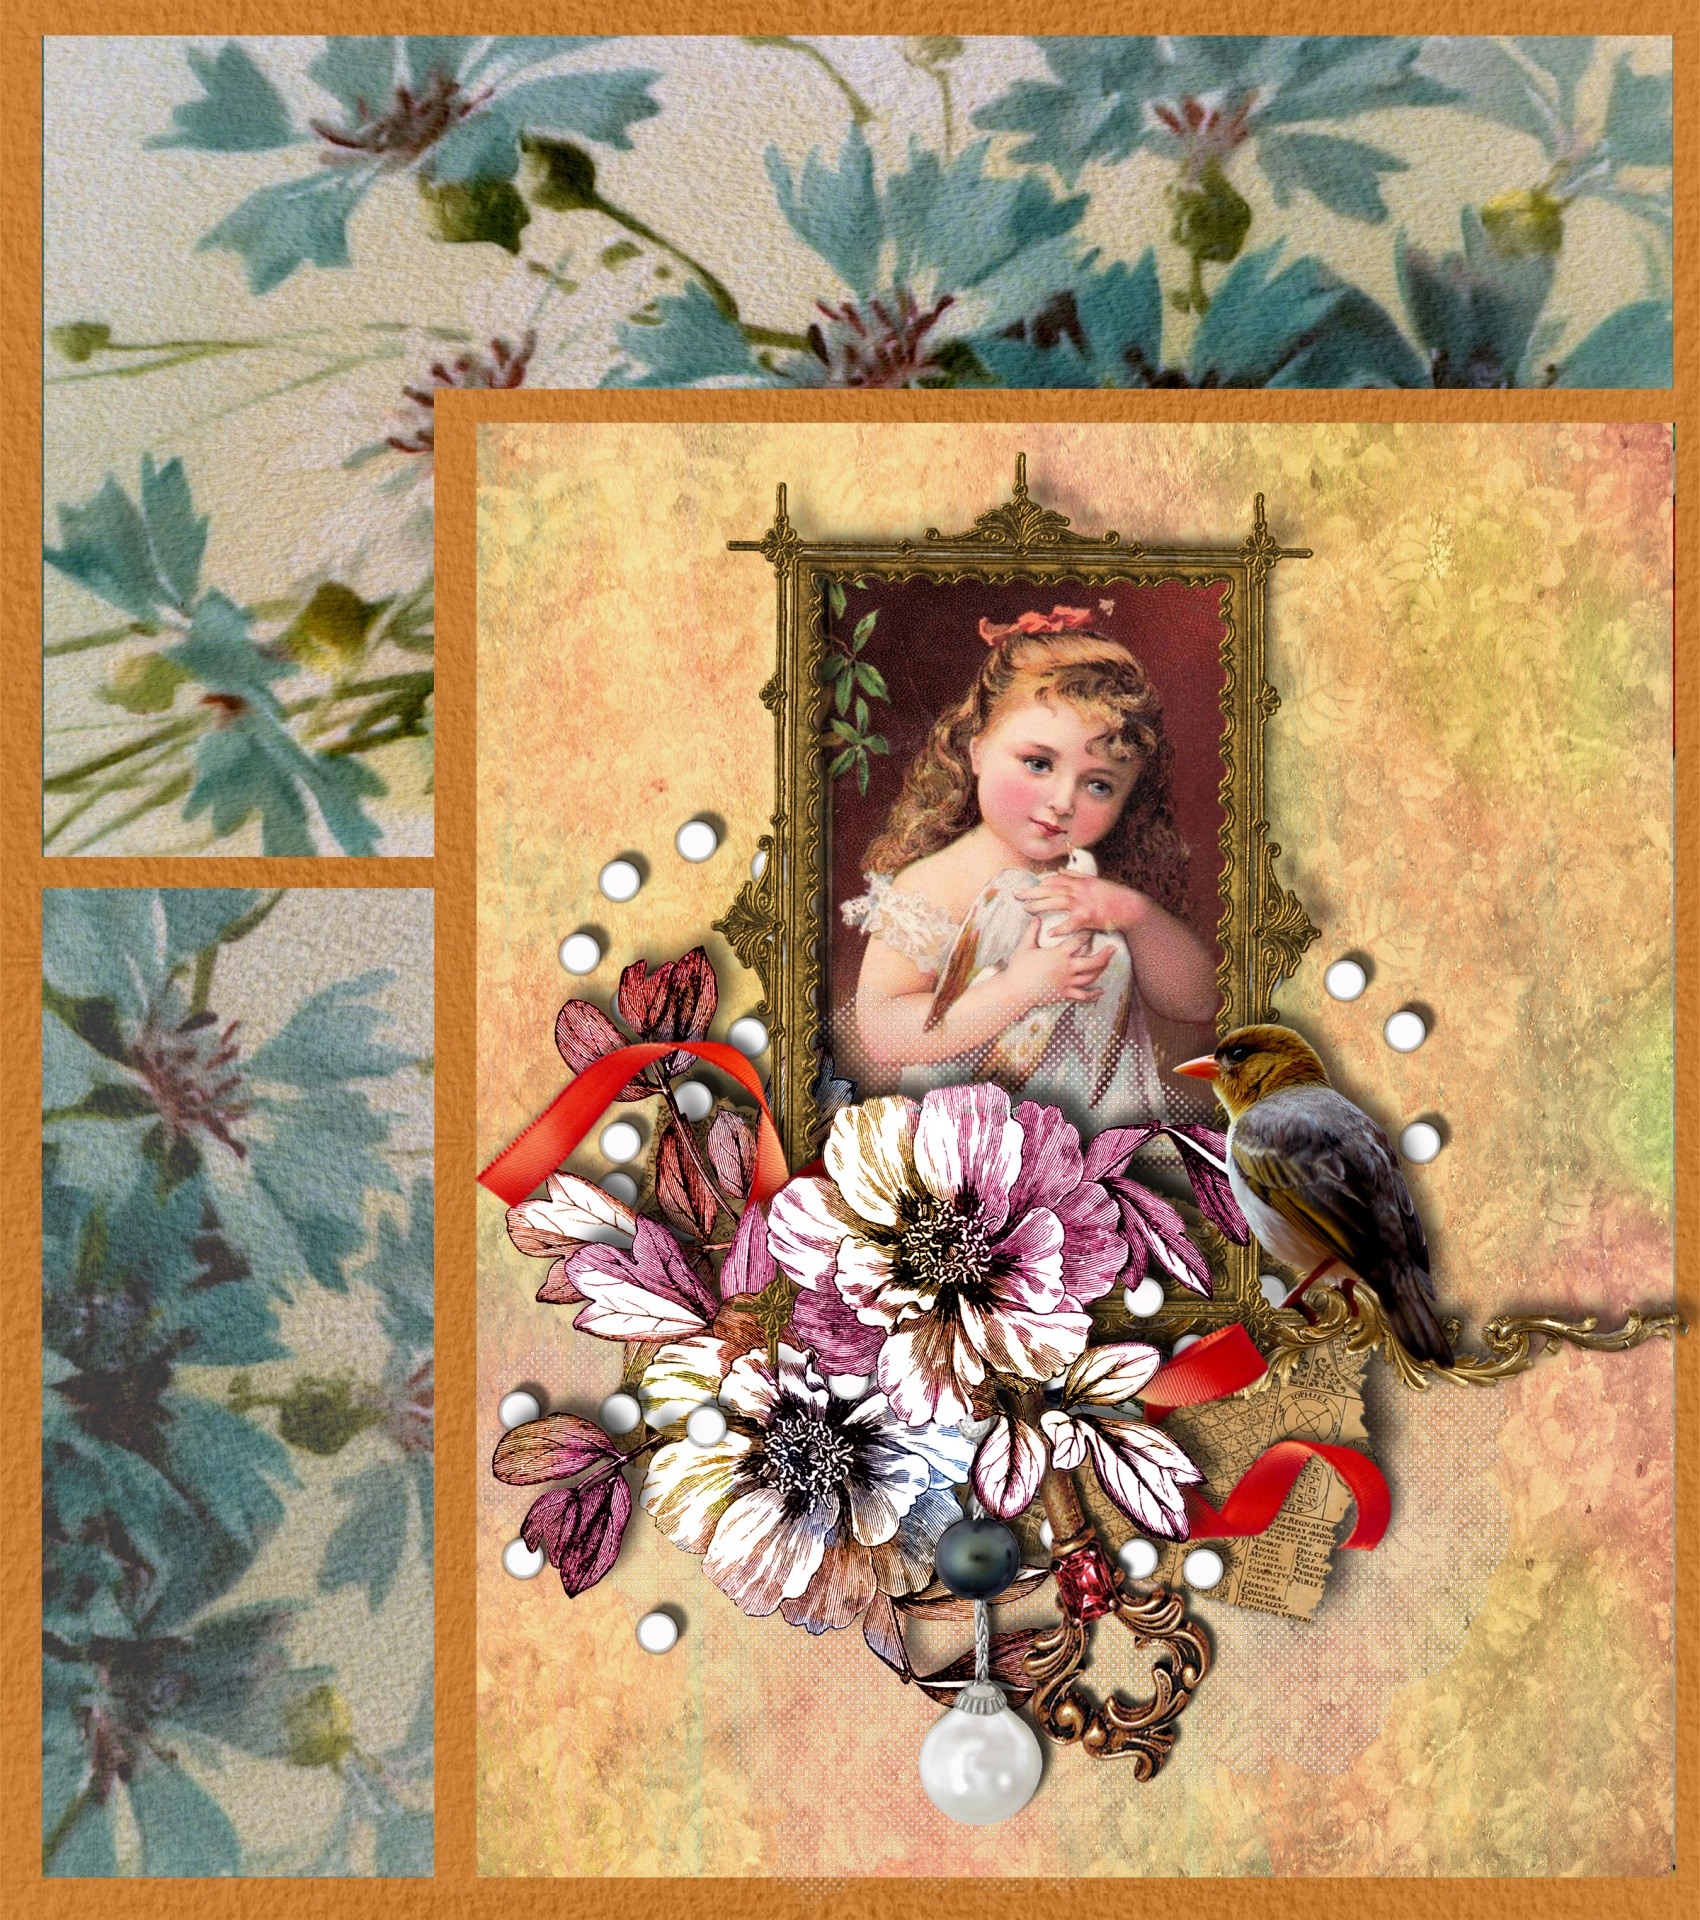 Floral Flowers Vintage Victorian Wallpaper Free Image From